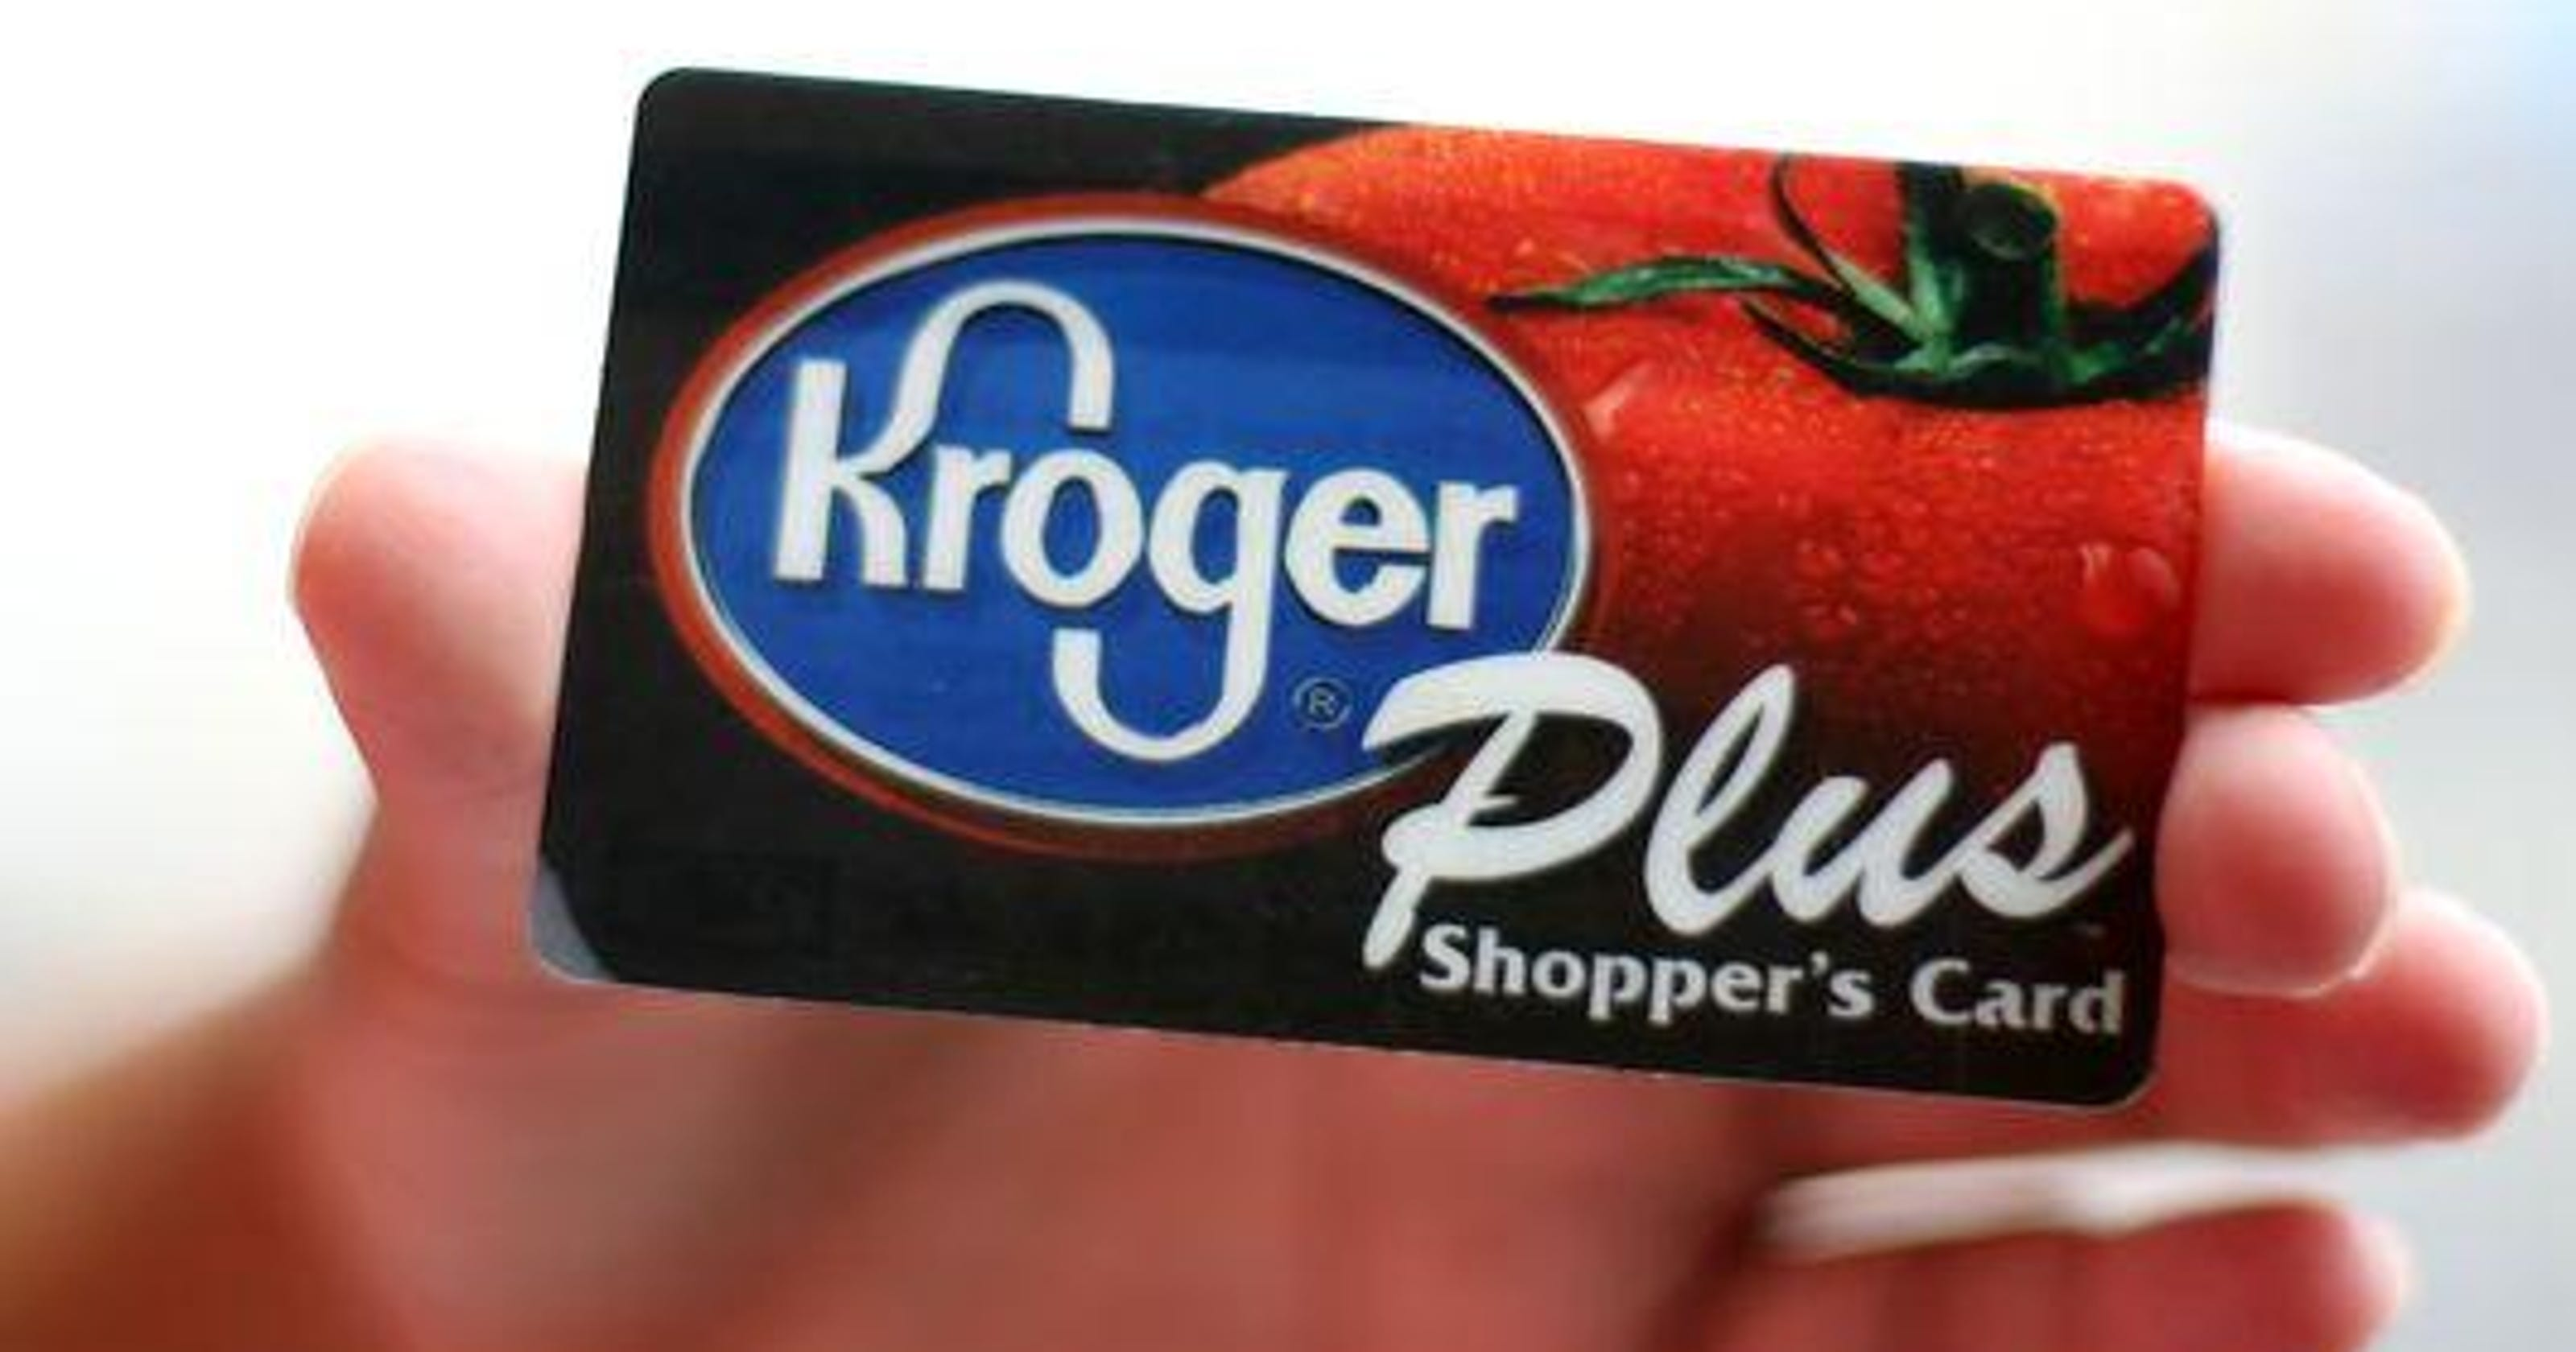 Cost of Kroger expansion: $4 7M, but Woodlawn jobs safe